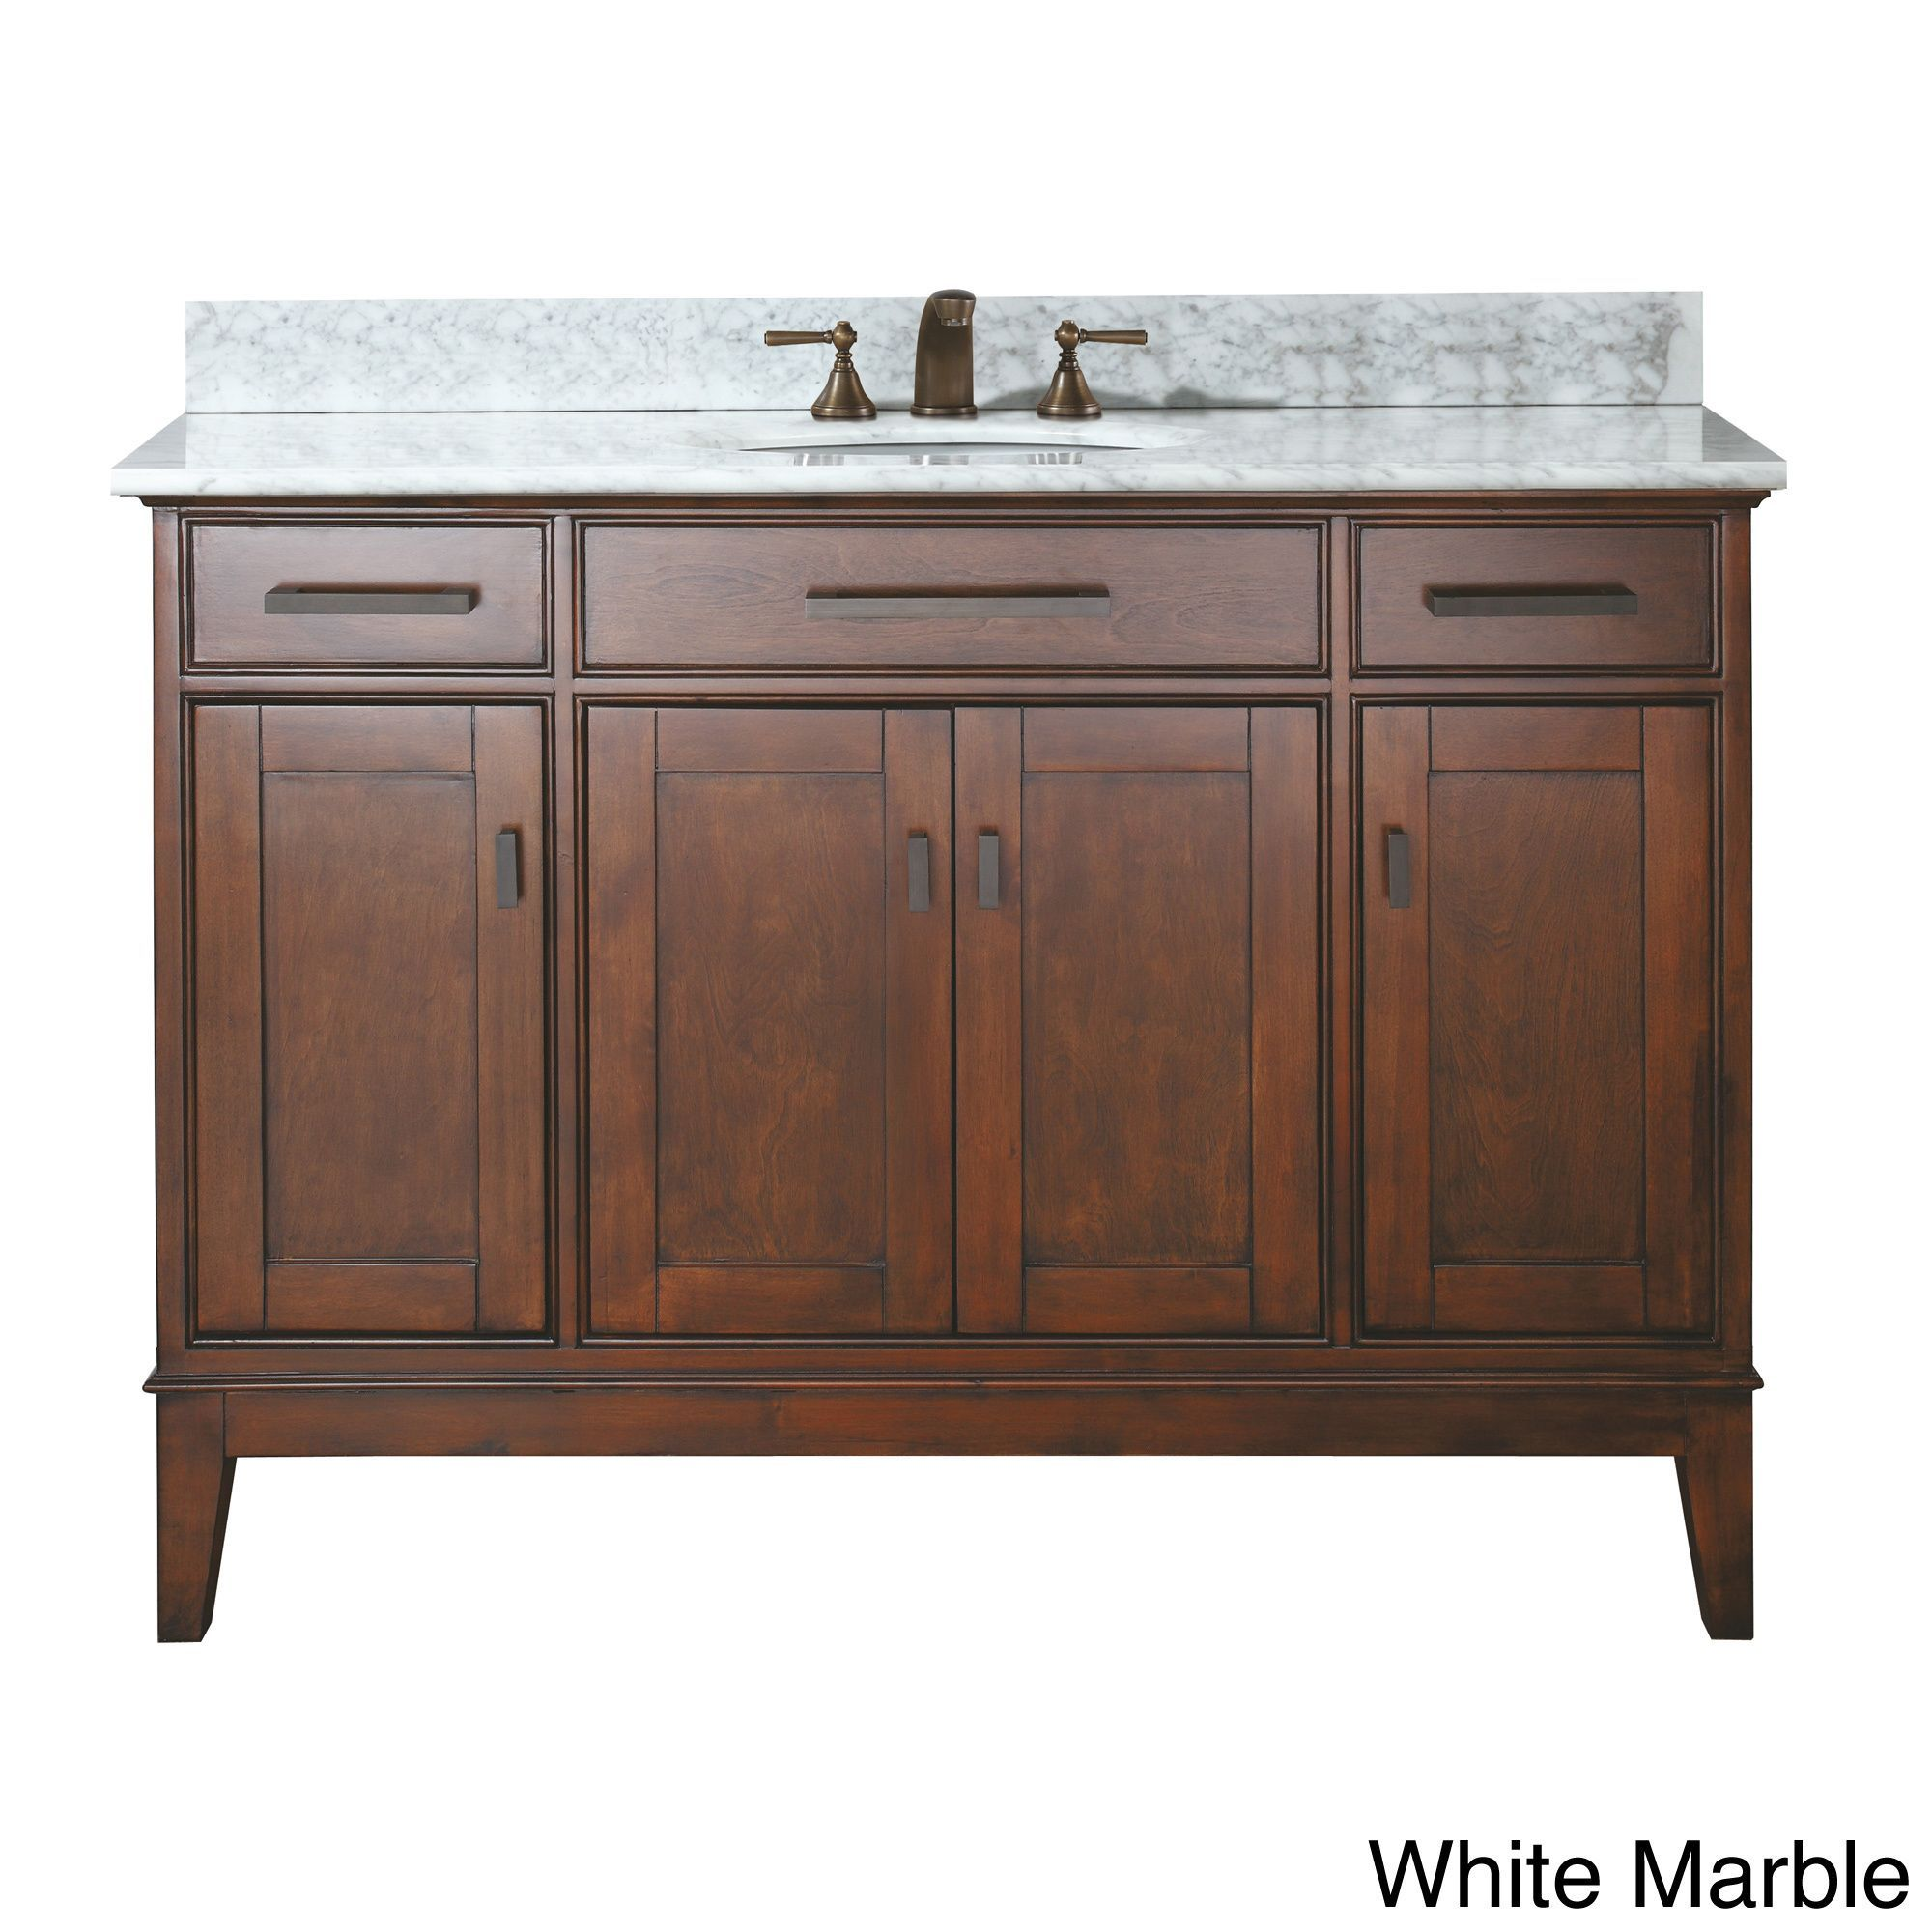 Avanity Madison 48 Inch Single Vanity In Tobacco Finish with Sink